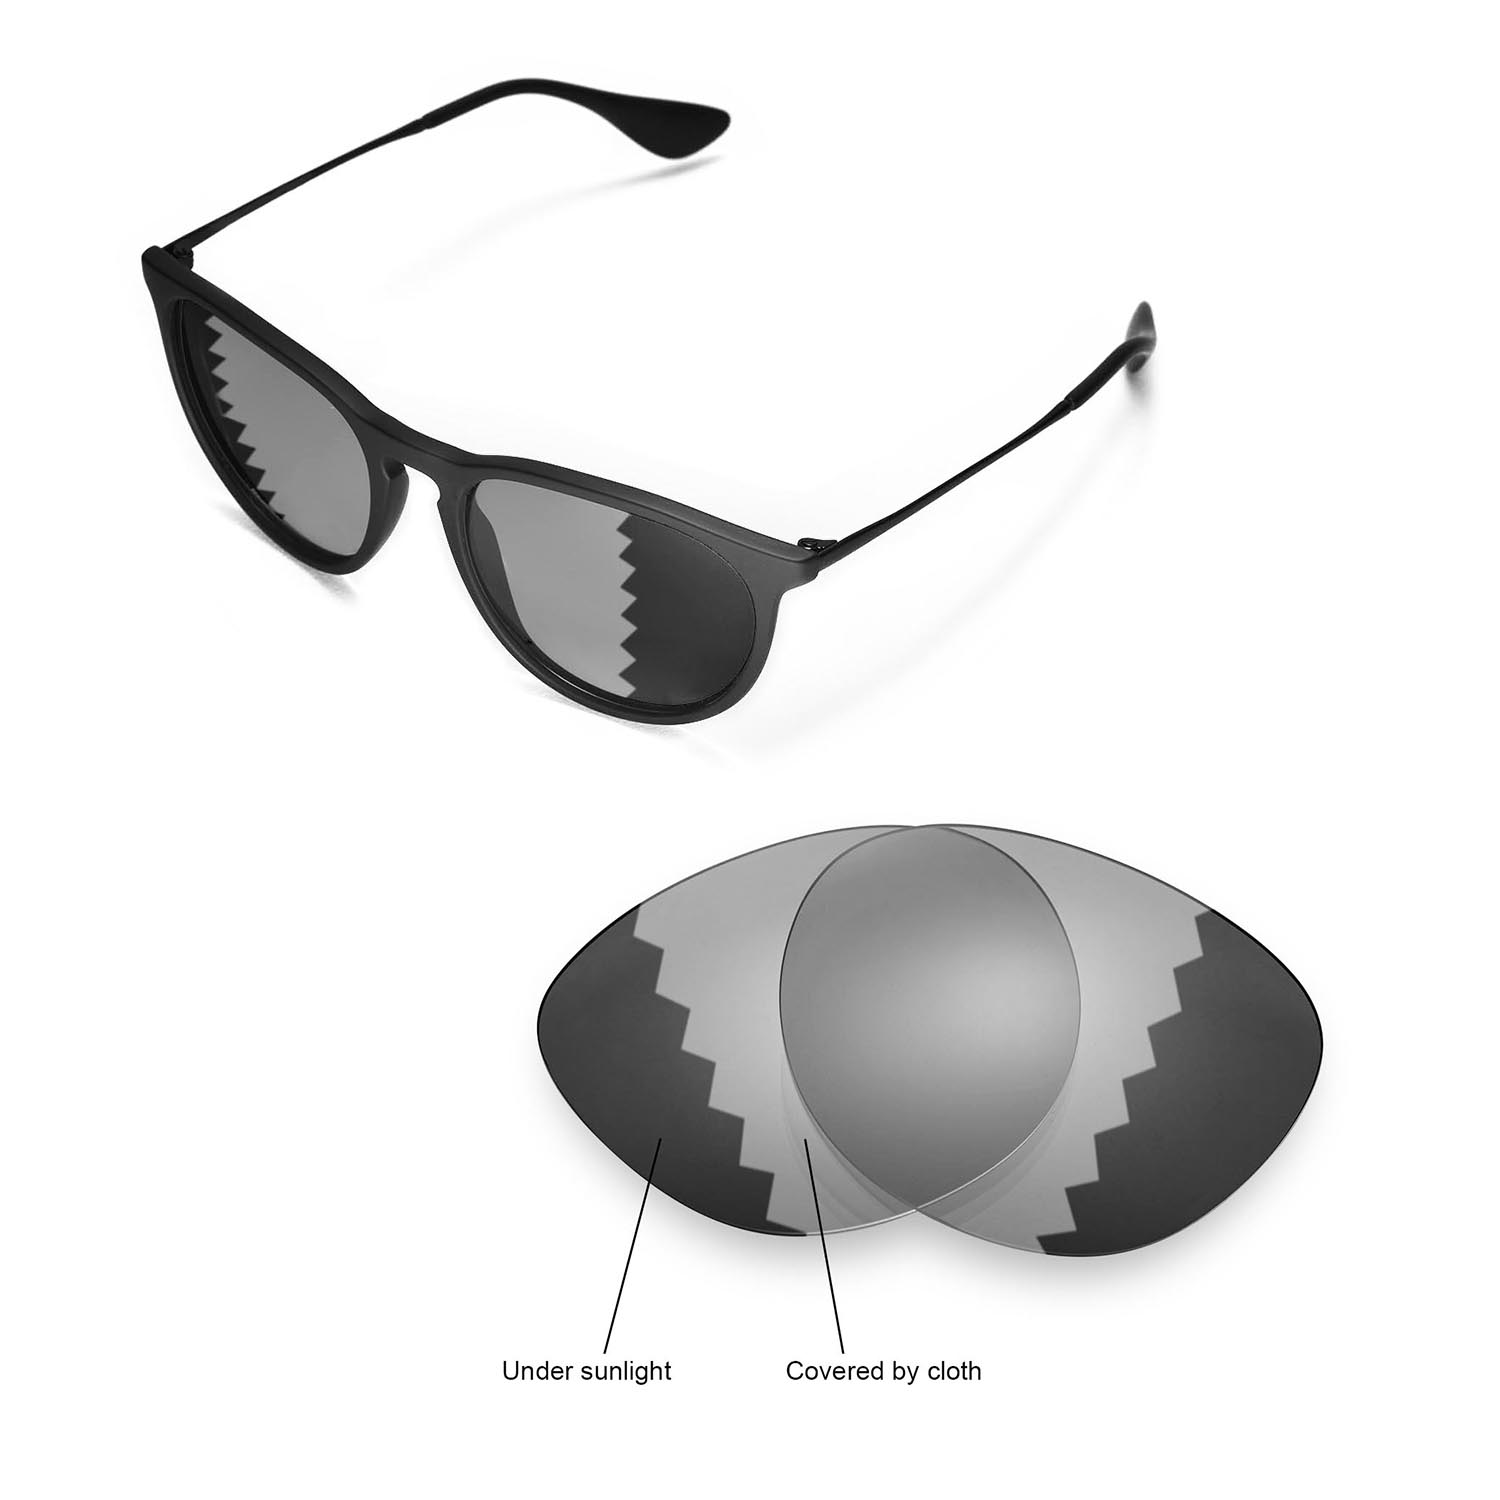 15139f2a2be Details about New Walleva Polarized Transition Lenses For Ray-Ban Erika  RB4171 54m Sunglasses